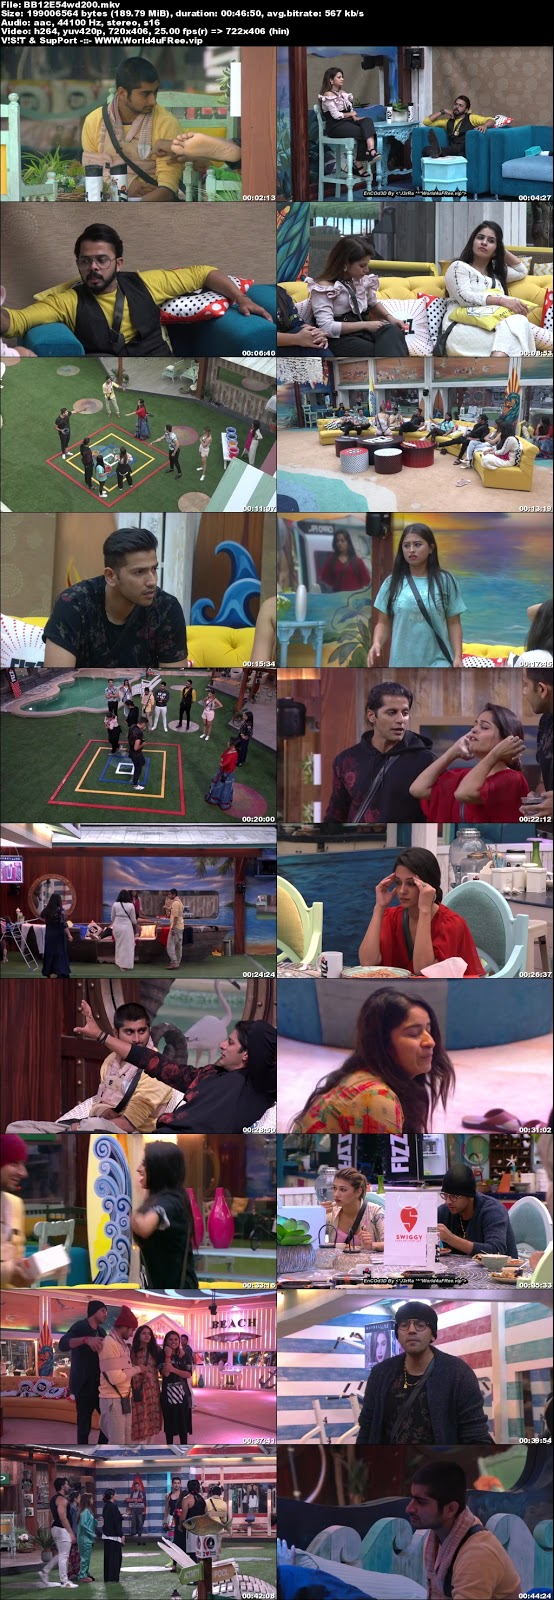 Bigg Boss 12 Episode 54 09 November 2018 WEBRip 480p 200Mb x264 world4ufree.vip tv show Episode 54 09 November 2018 world4ufree.vip 200mb 250mb 300mb compressed small size free download or watch online at world4ufree.vip